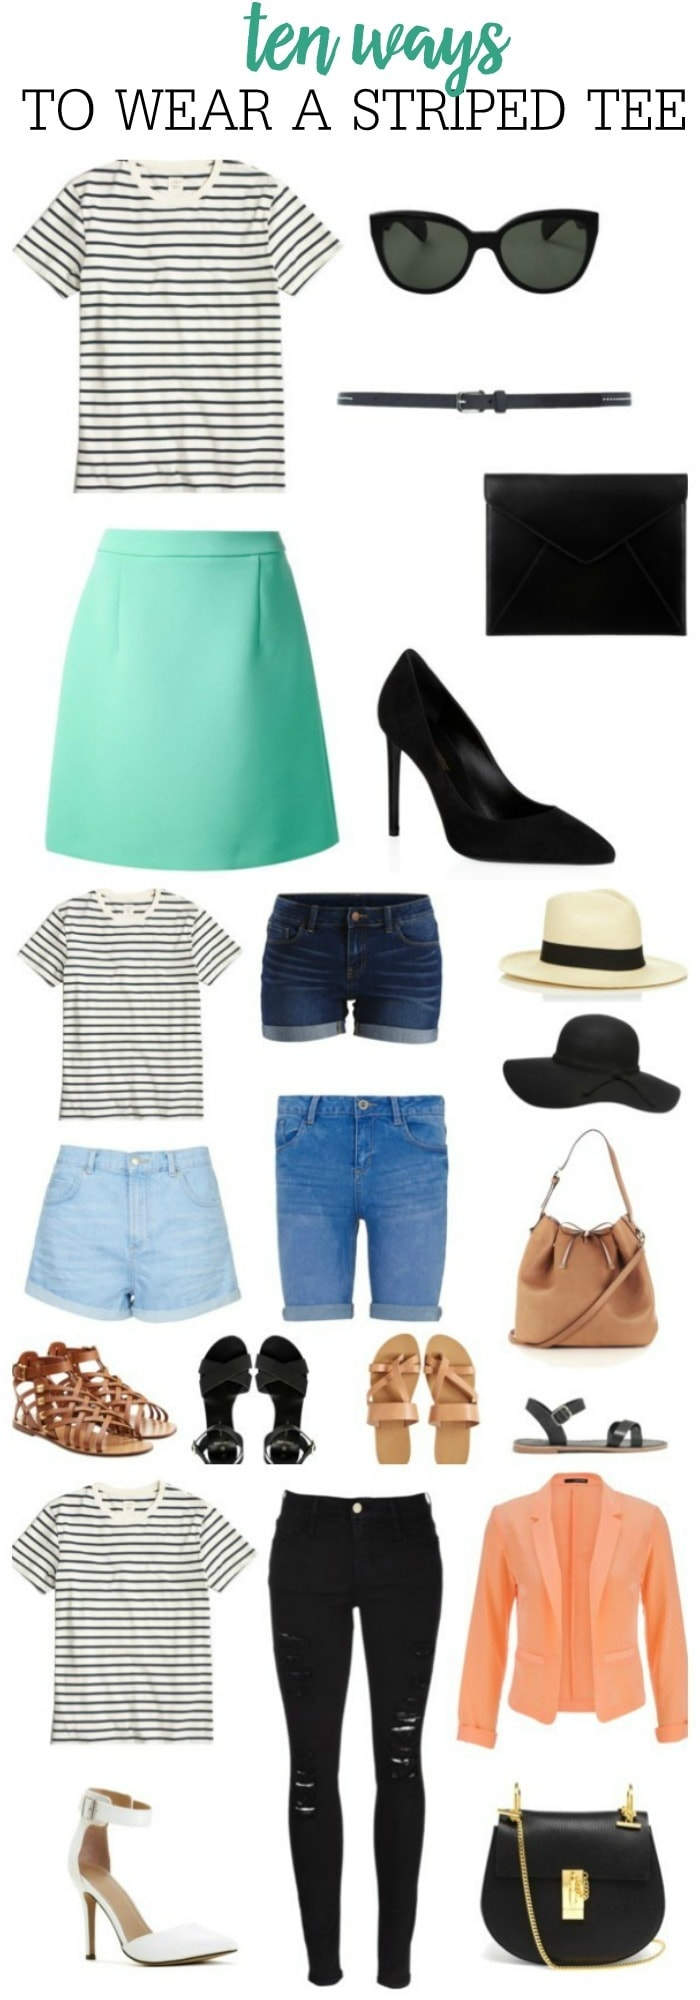 10 Ways to Wear a Striped Tee - so many great fashion and outfit ideas from casual to fancy!